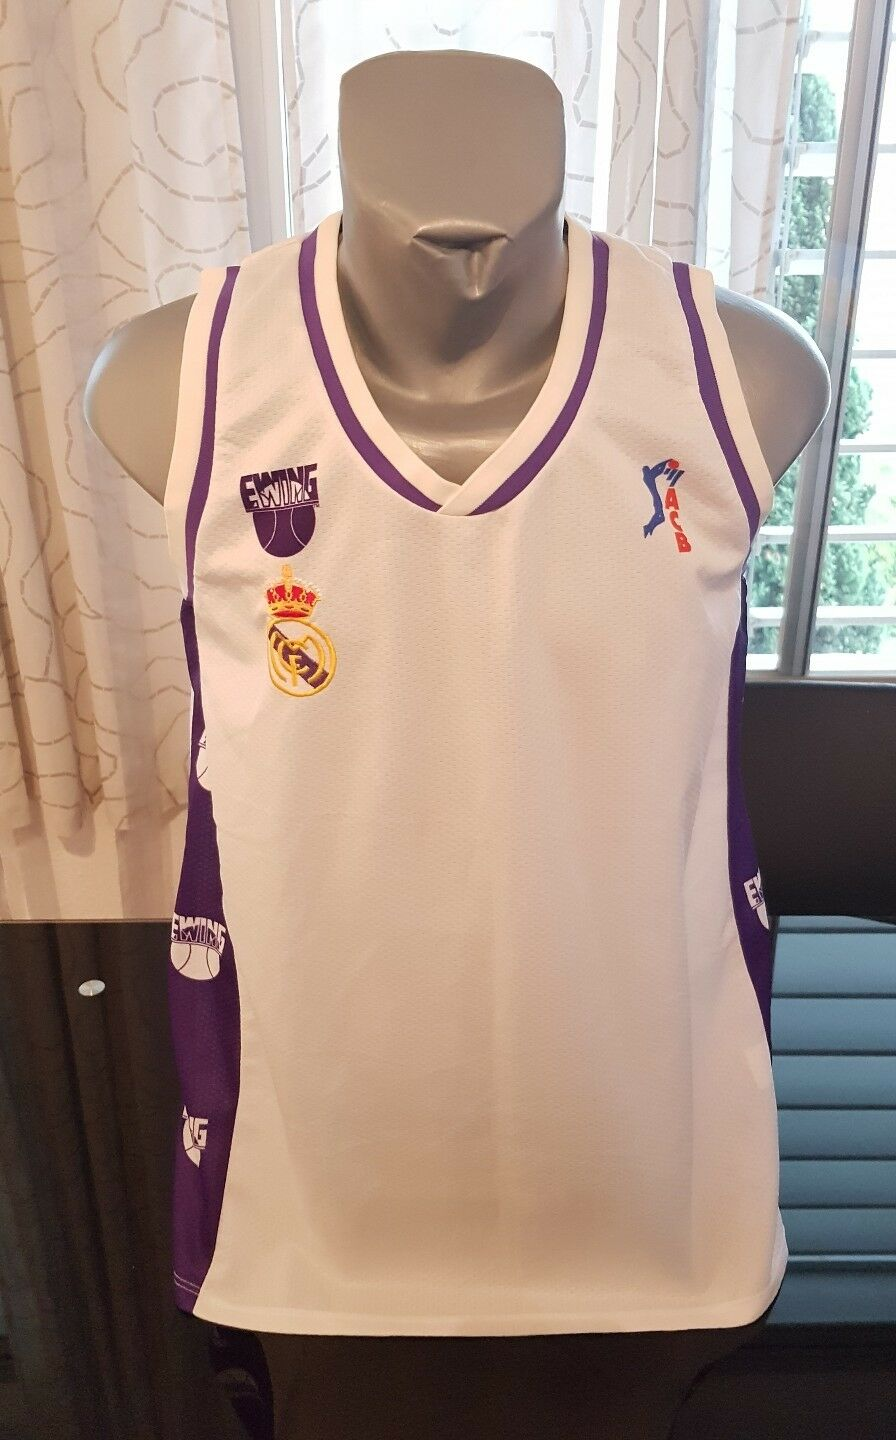 CAMISETA SHIRT VINTAGE 90'S EWING REAL MADRID BASKETBALL Taille L